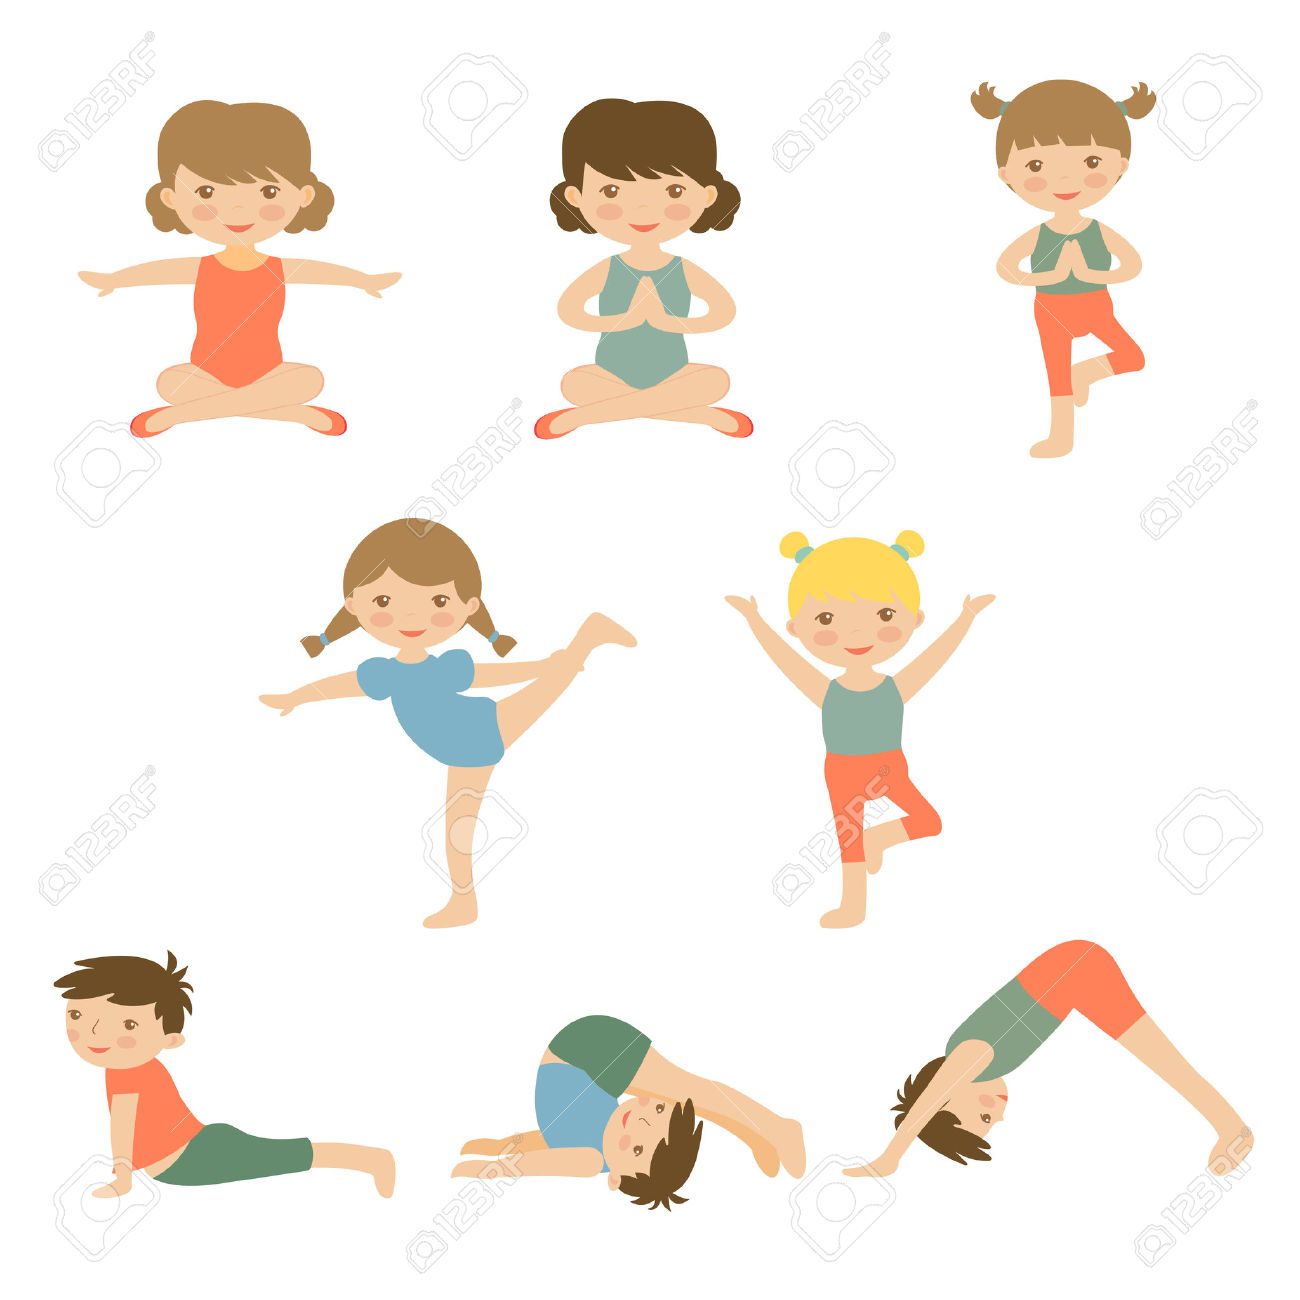 Cute Yoga Kids Characters Collection. Illustration In Vector.